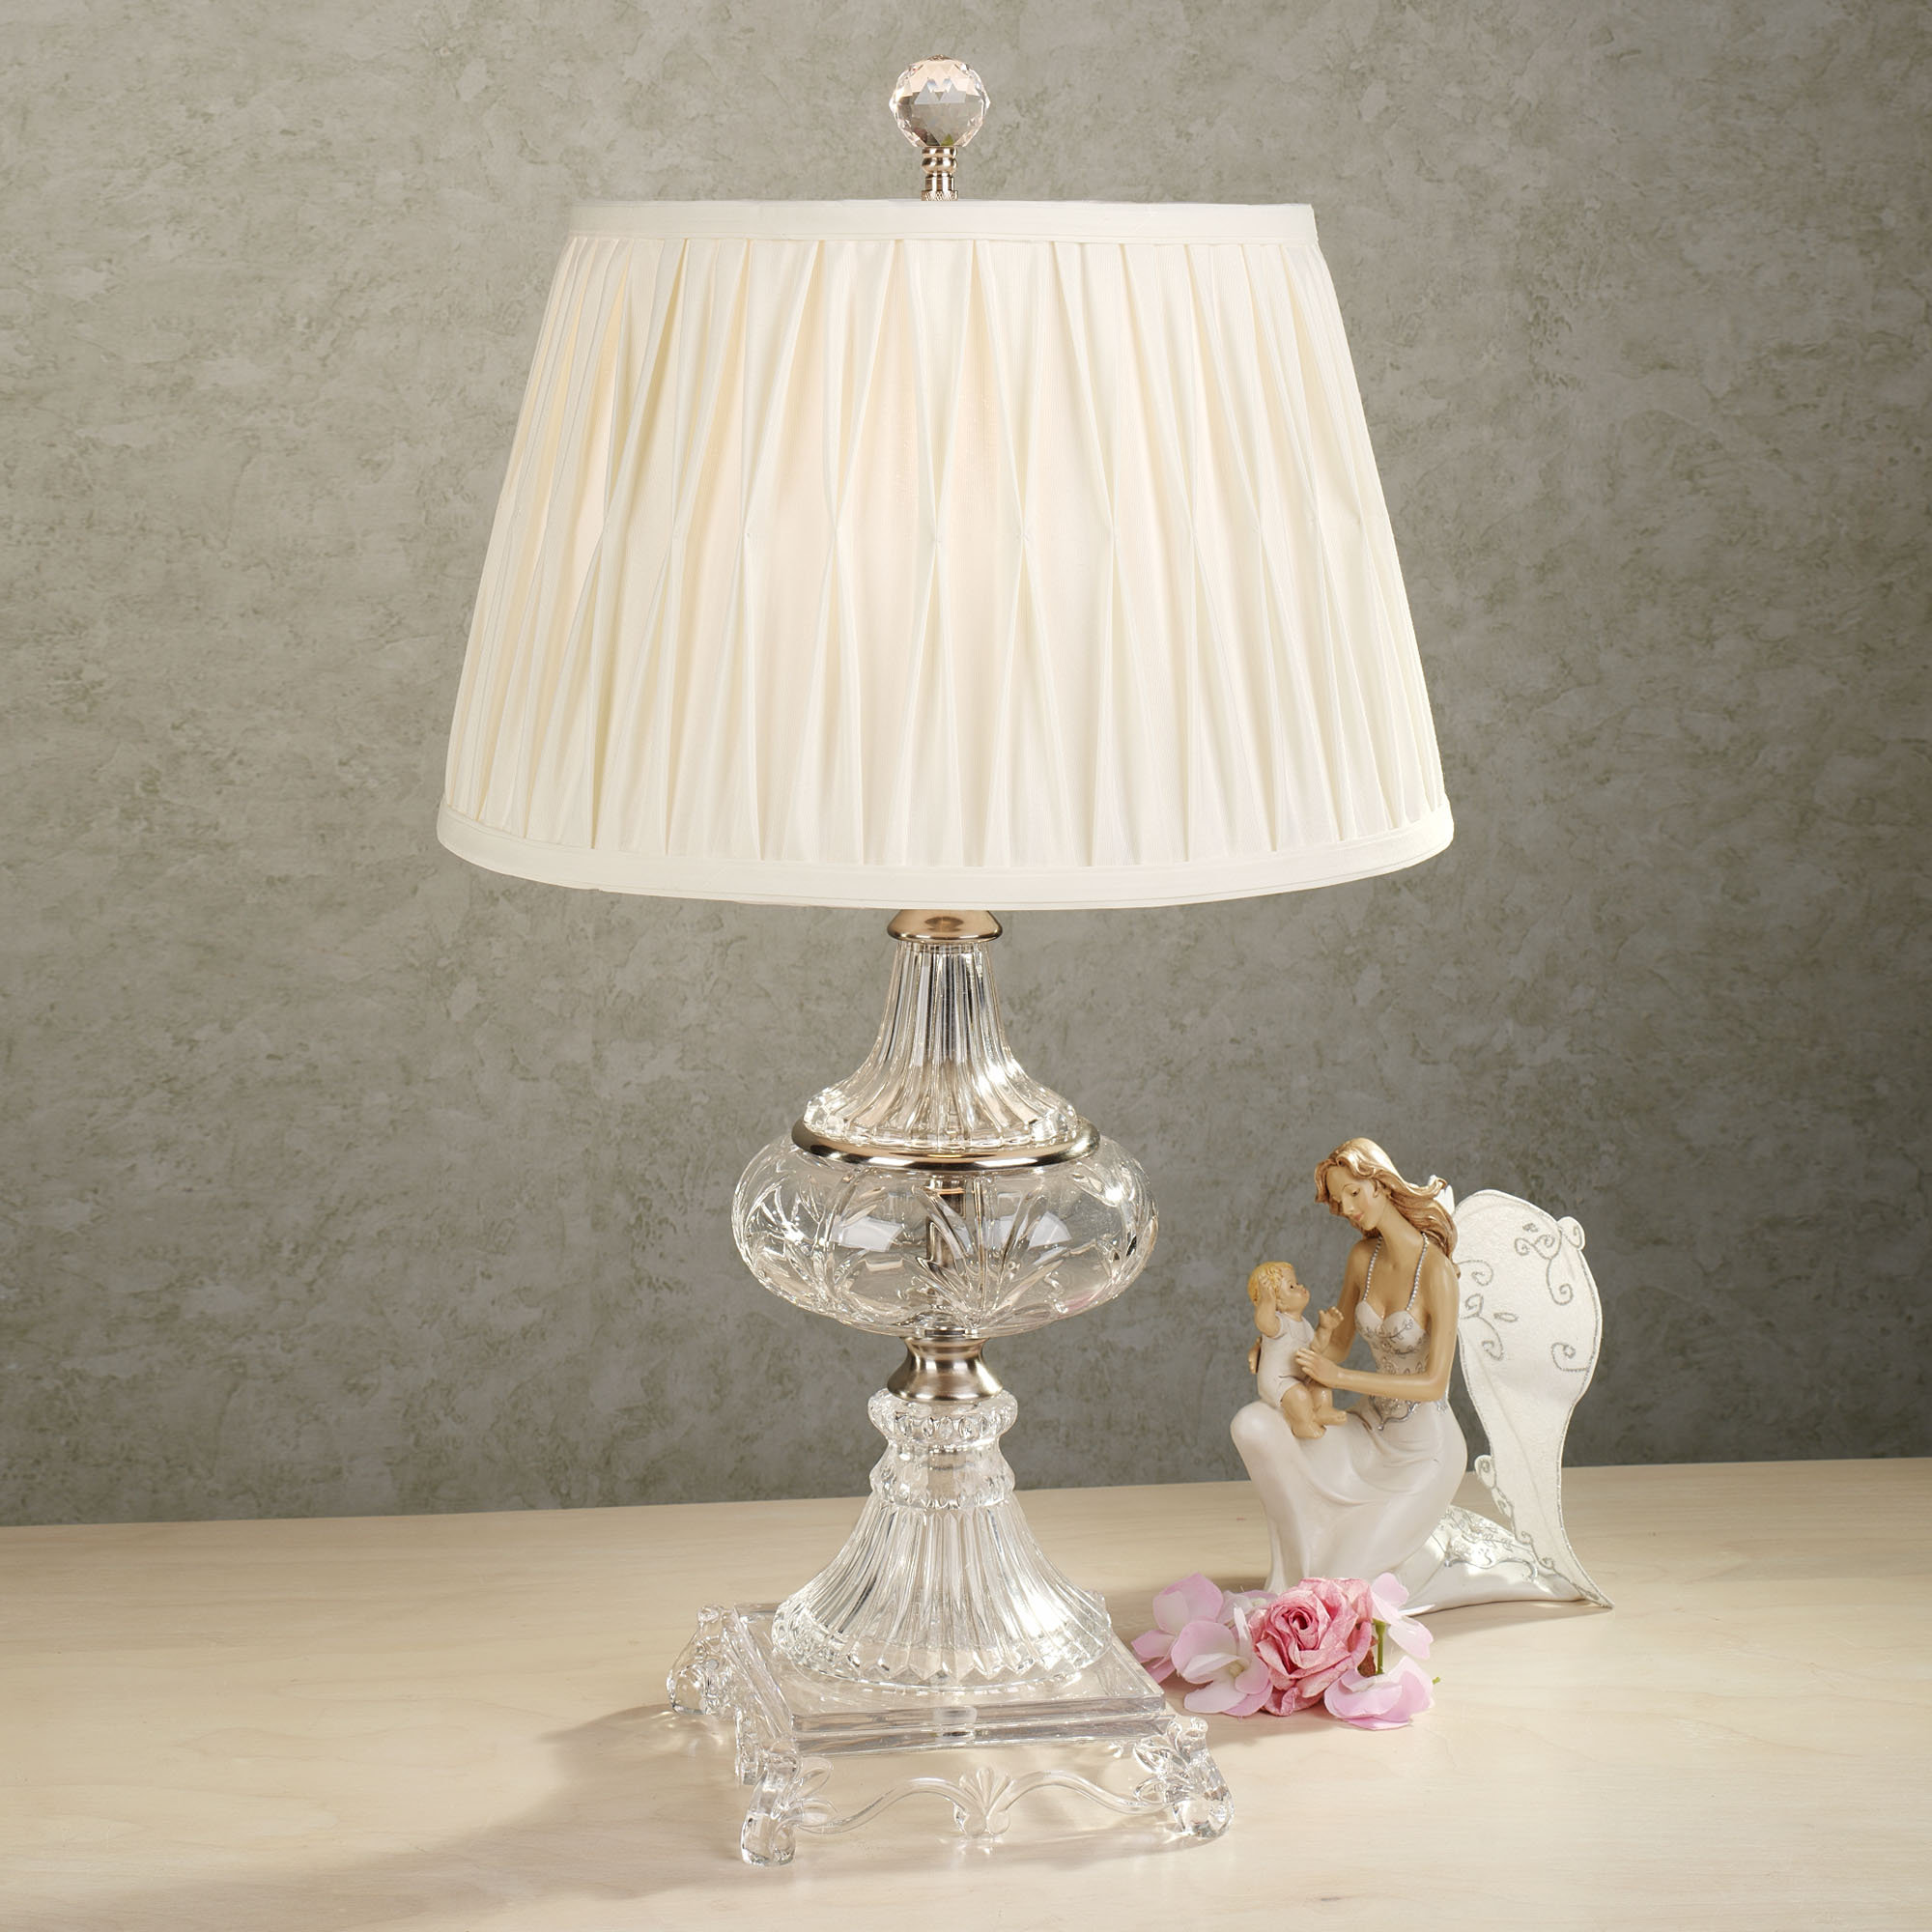 New crystal table lamps for bedroom ideas with fringe lamp shades images unique sjrhqgu